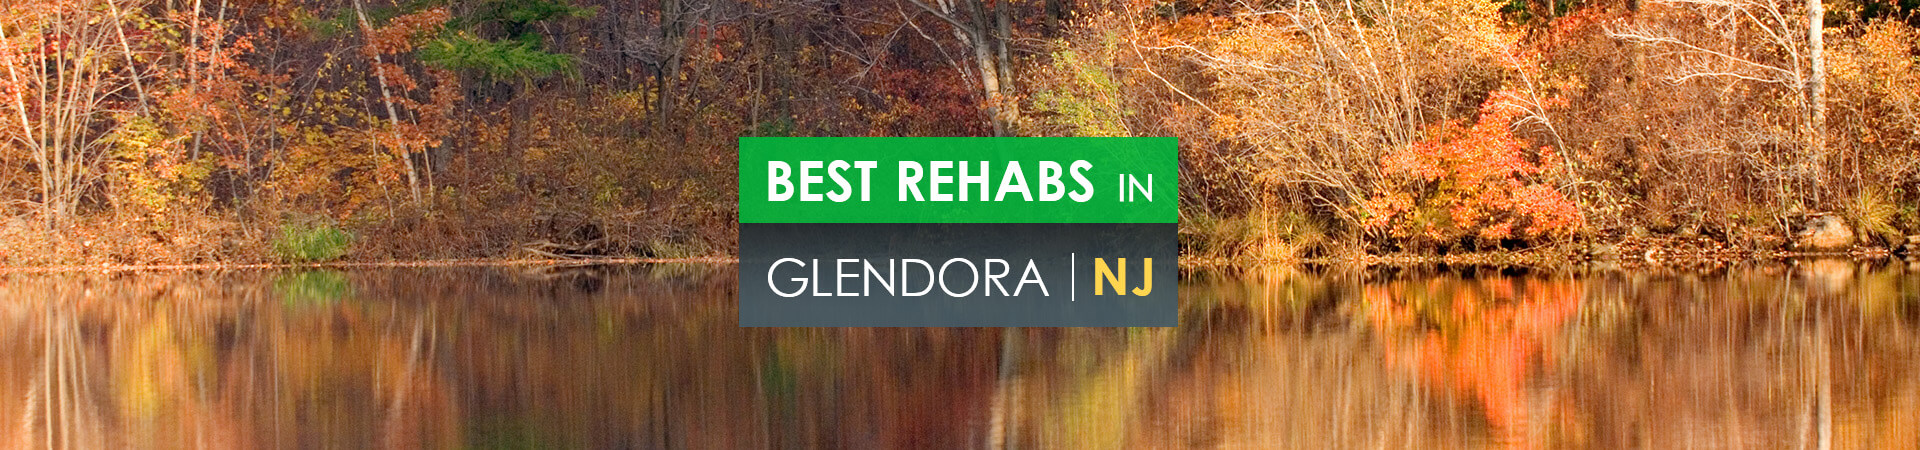 Best rehabs in Glendora, NJ